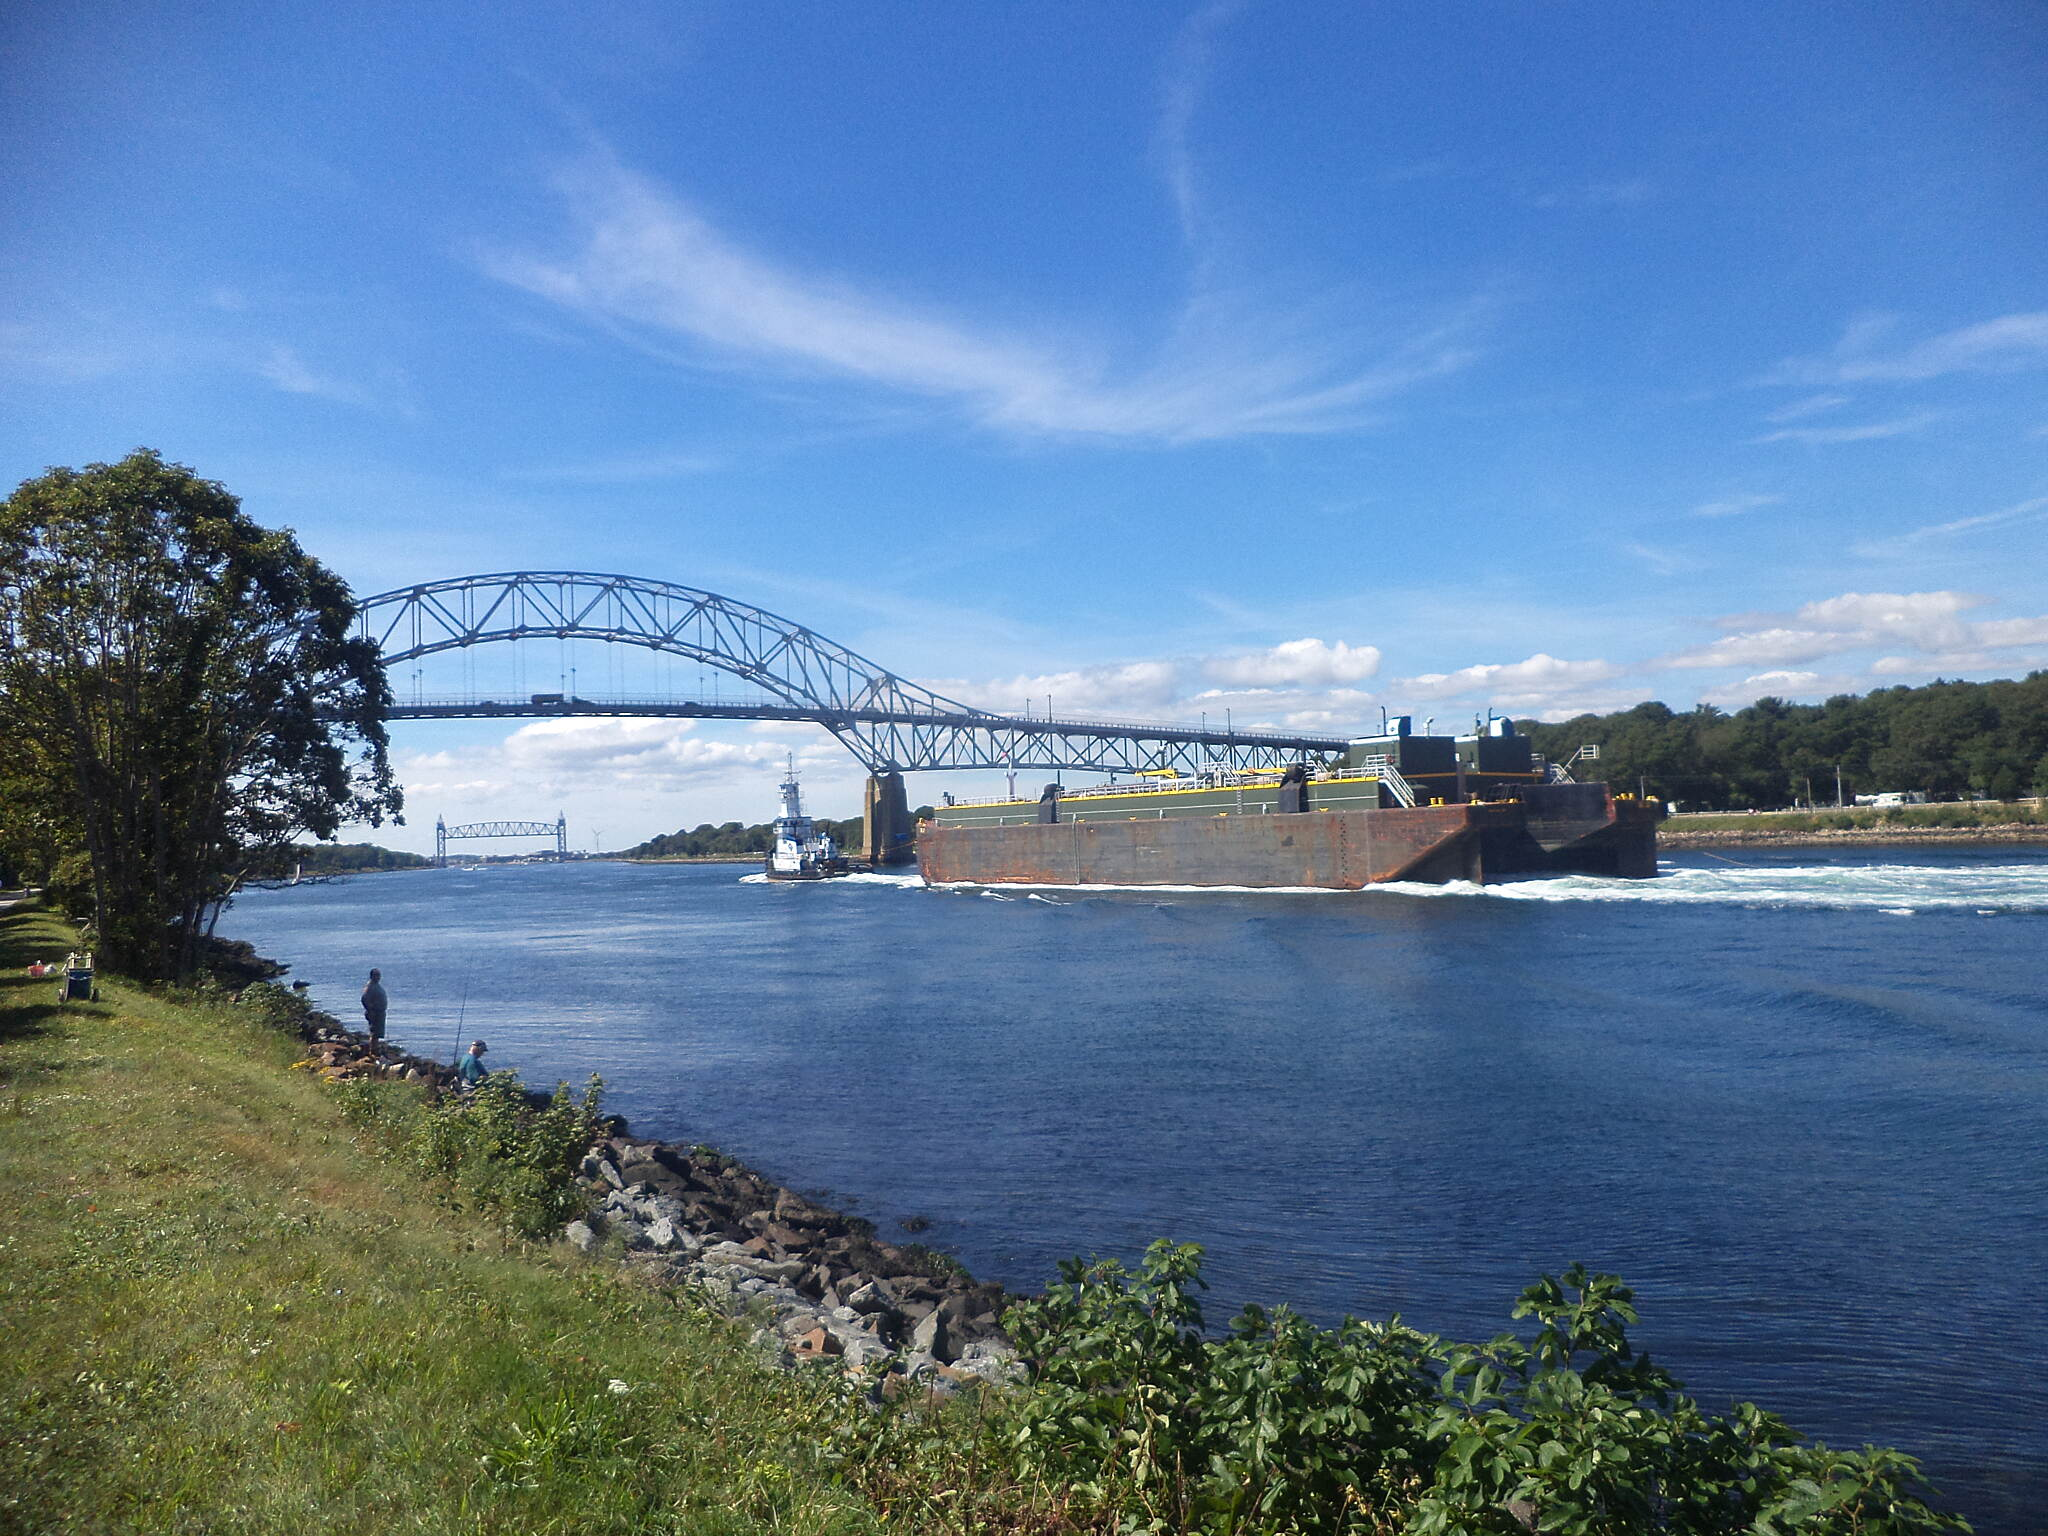 Cape Cod Canal Bikeway Cape Cod Canal Barge making it's way to the Atlantic near Mass Maritime Academy